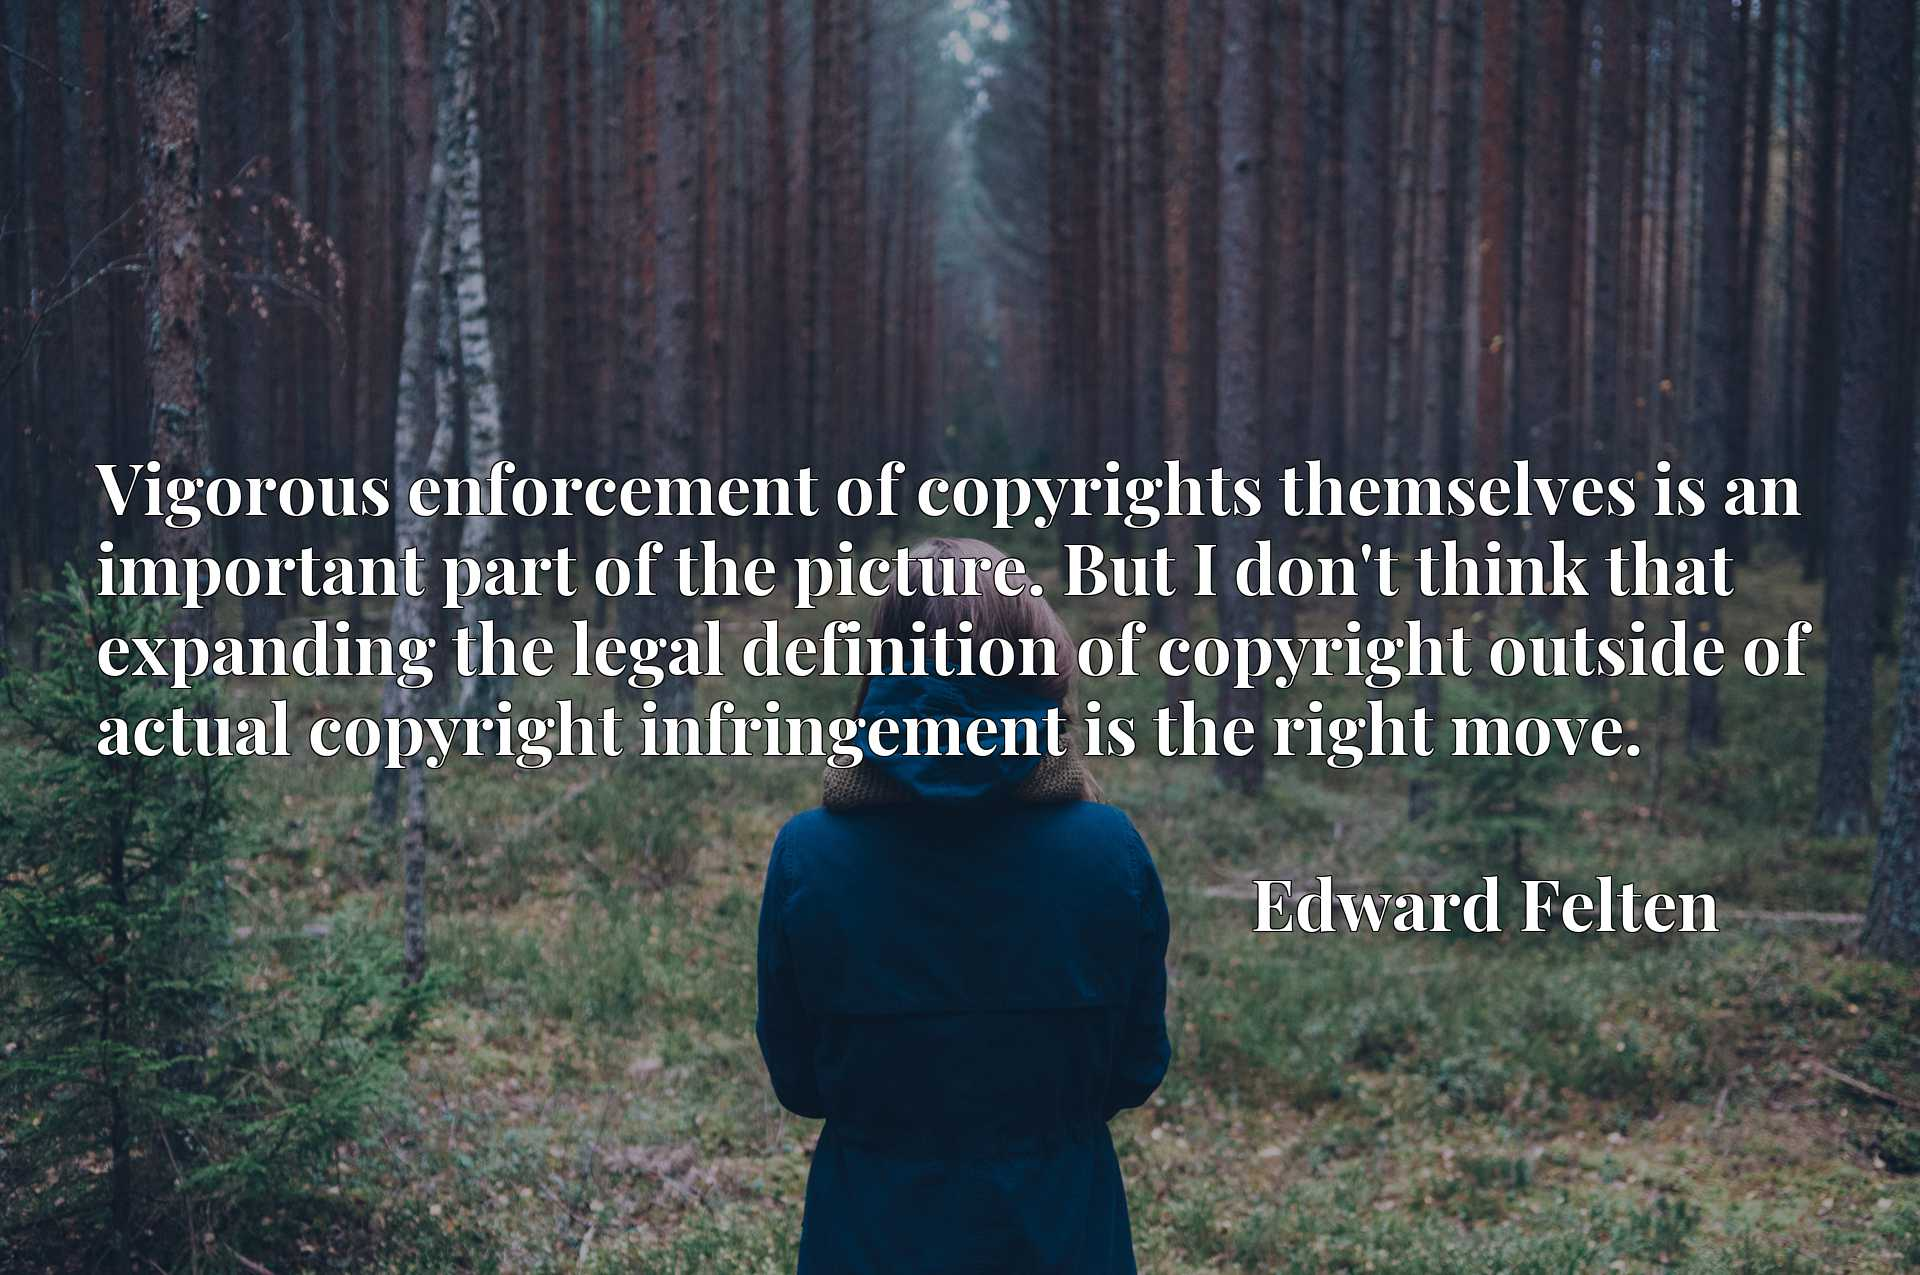 Vigorous enforcement of copyrights themselves is an important part of the picture. But I don't think that expanding the legal definition of copyright outside of actual copyright infringement is the right move.